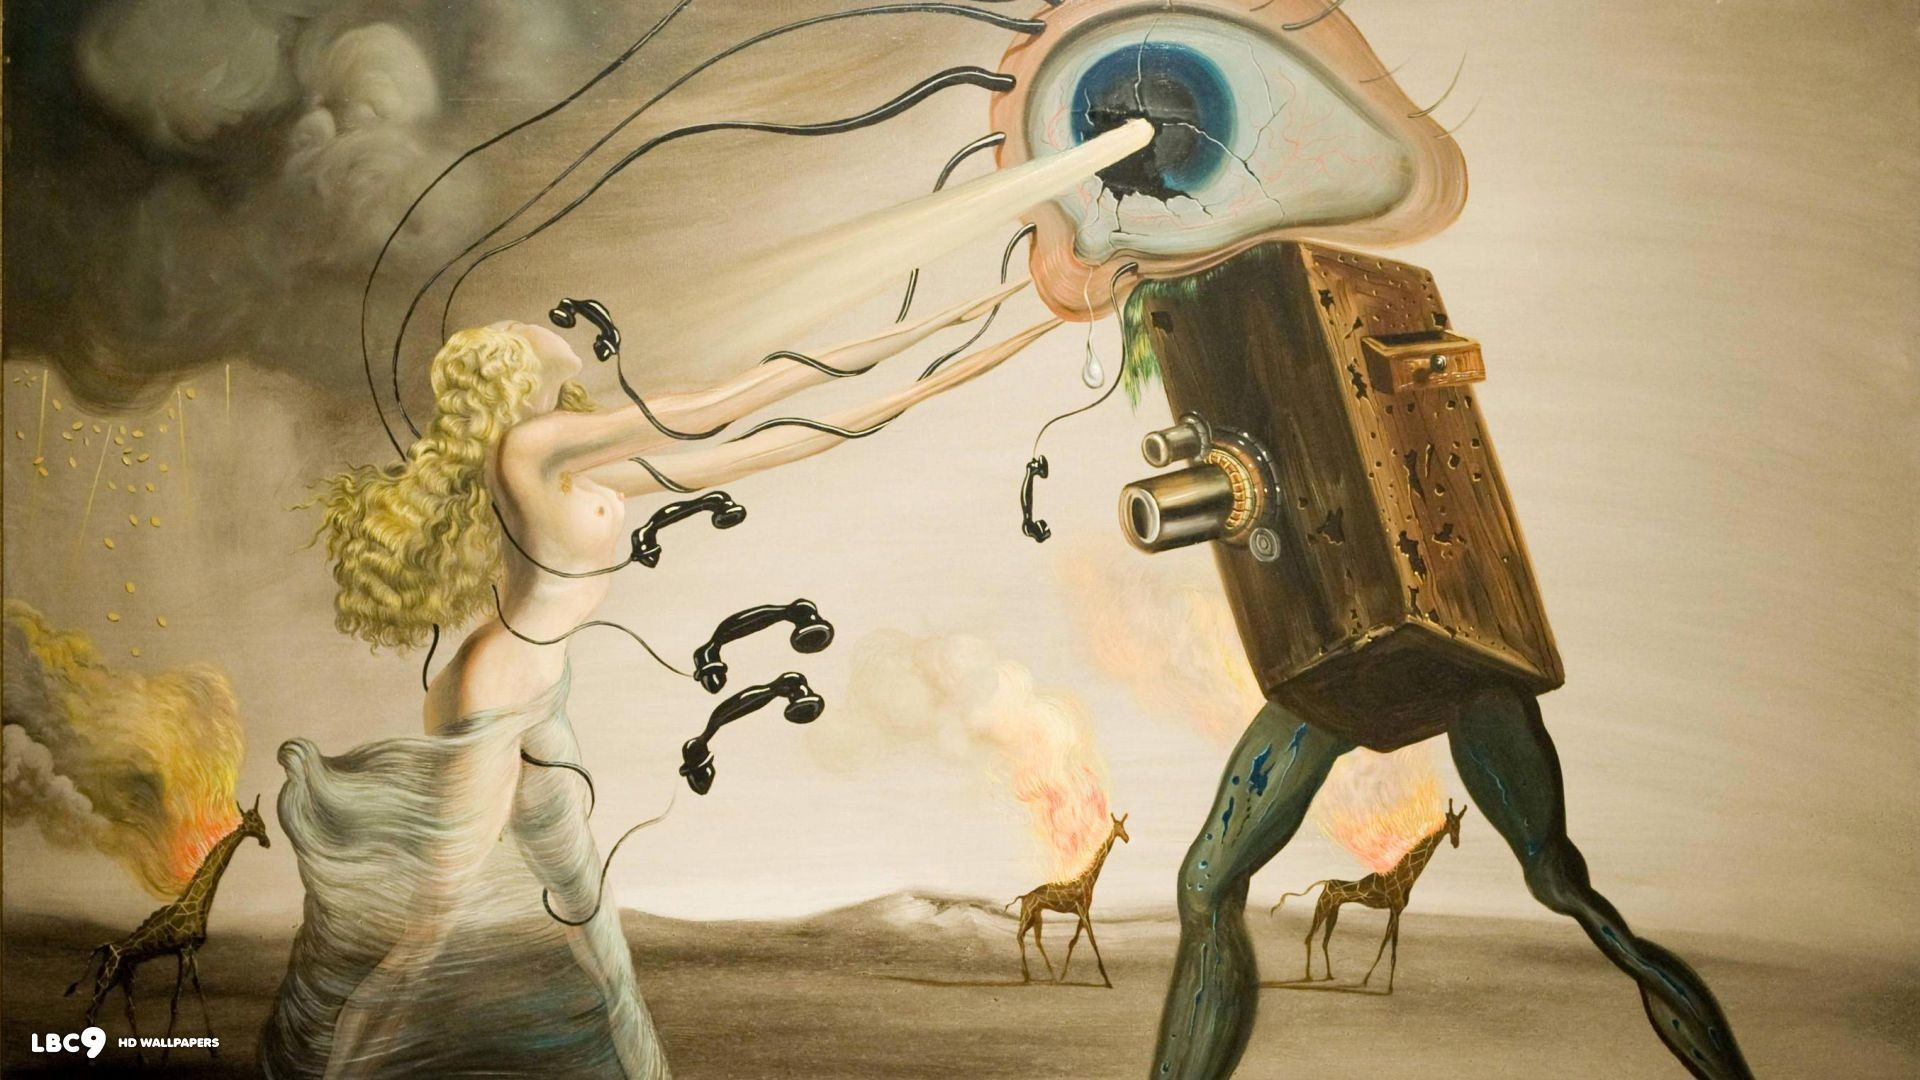 The Persistence of Memory ints by Salvador Dalí at